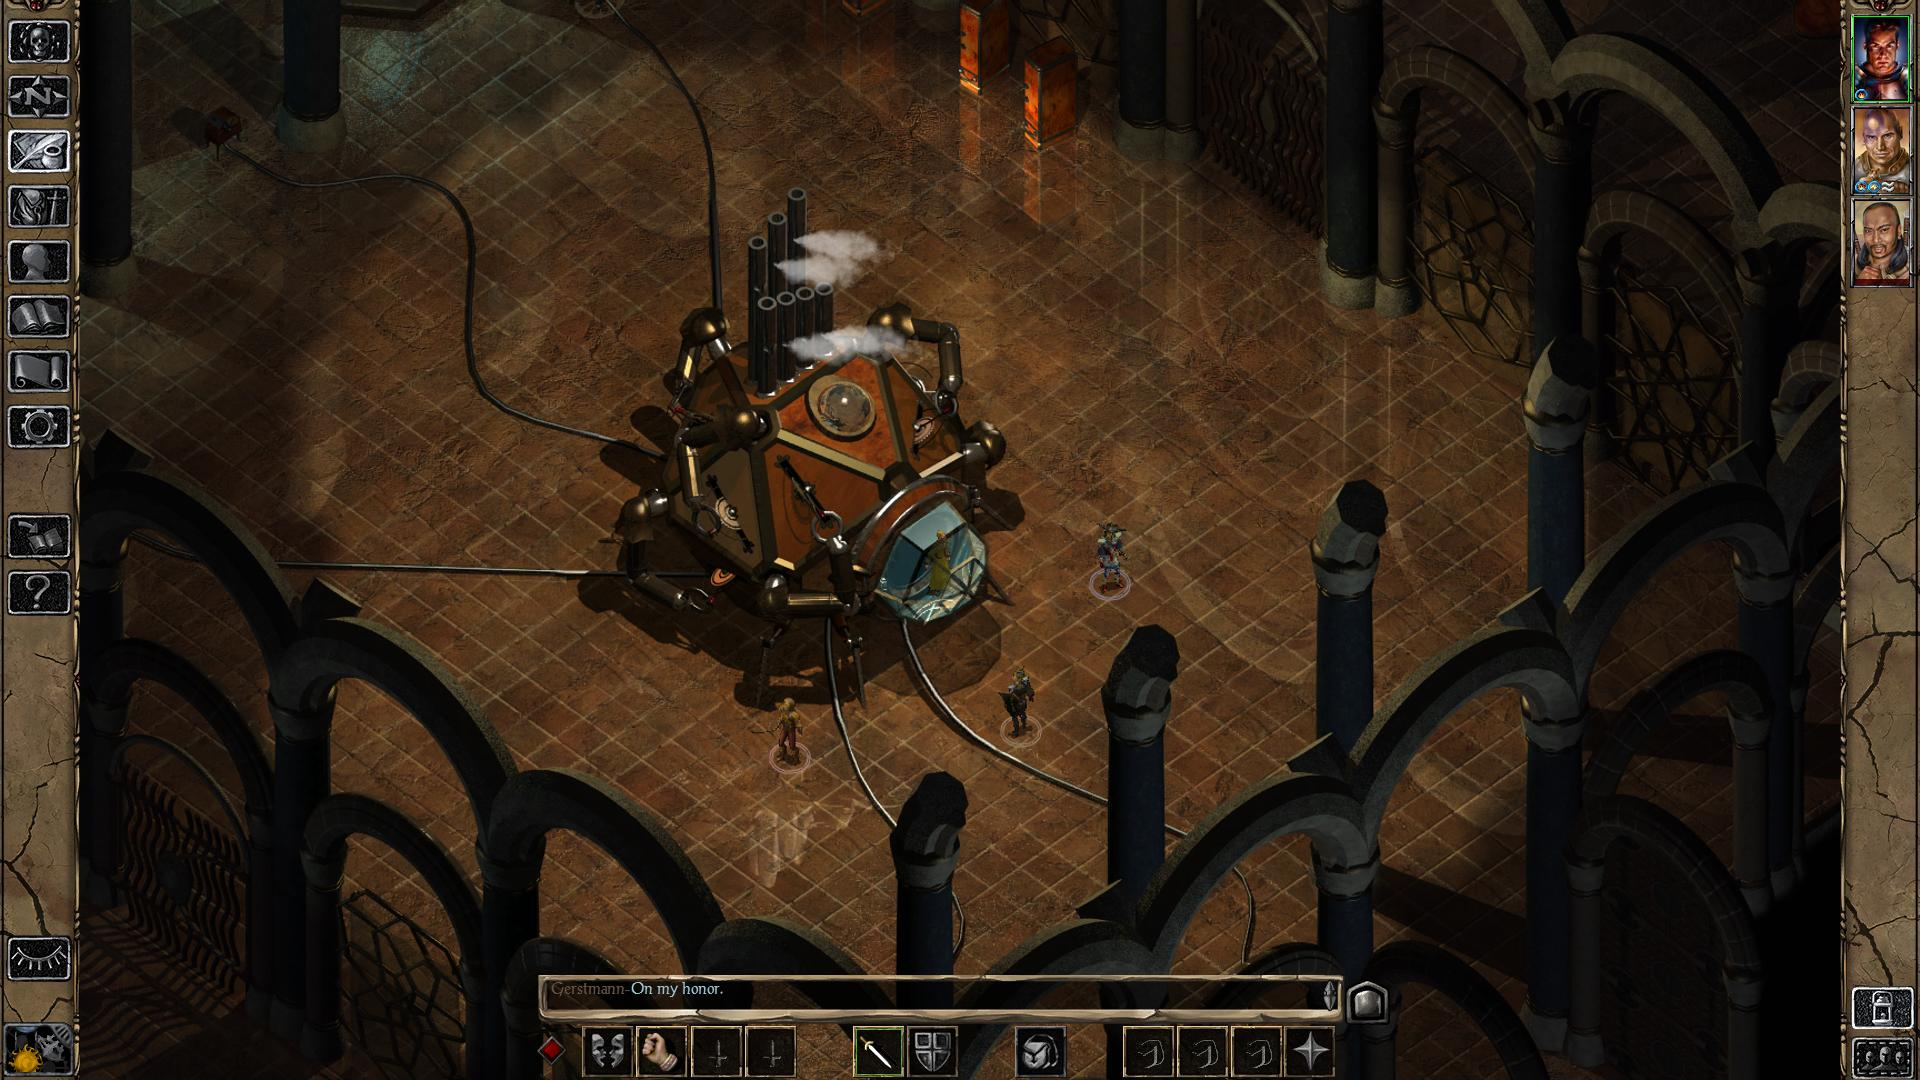 Baldur's Gate 2: Enhanced Edition PC and Mac Release Date Confirmed, First Gameplay Trailer Now Available #28622